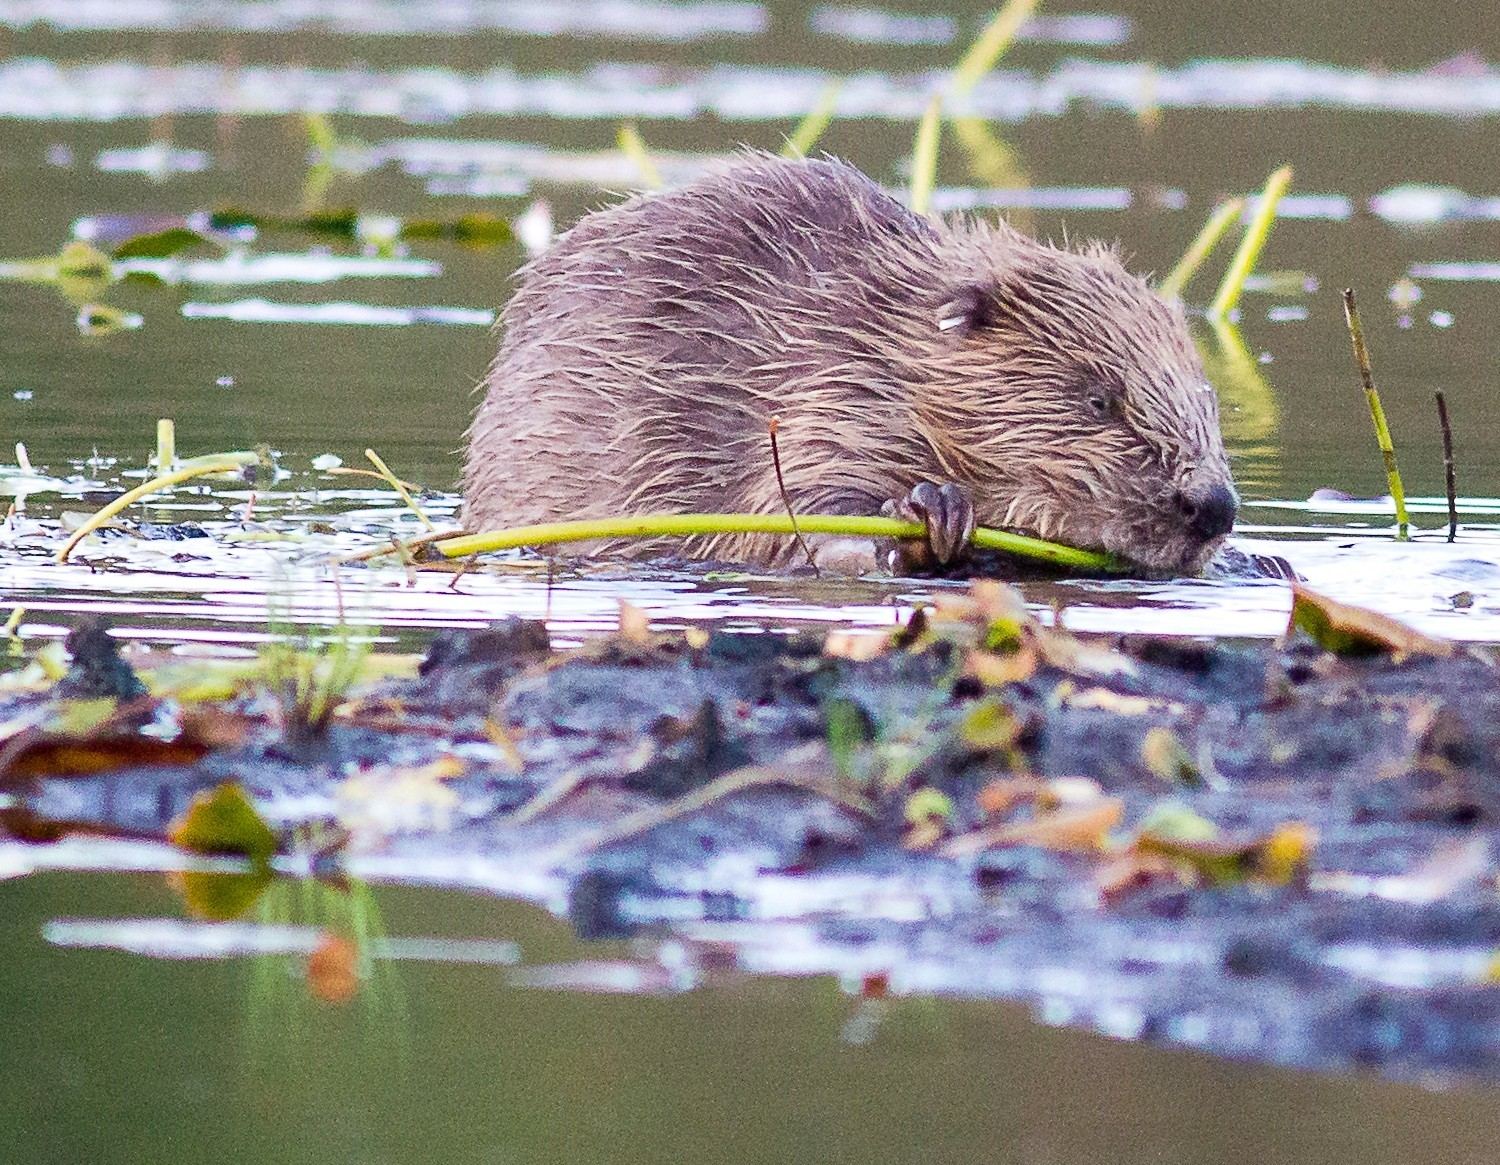 Further unauthorised releases of beavers will be a criminal act